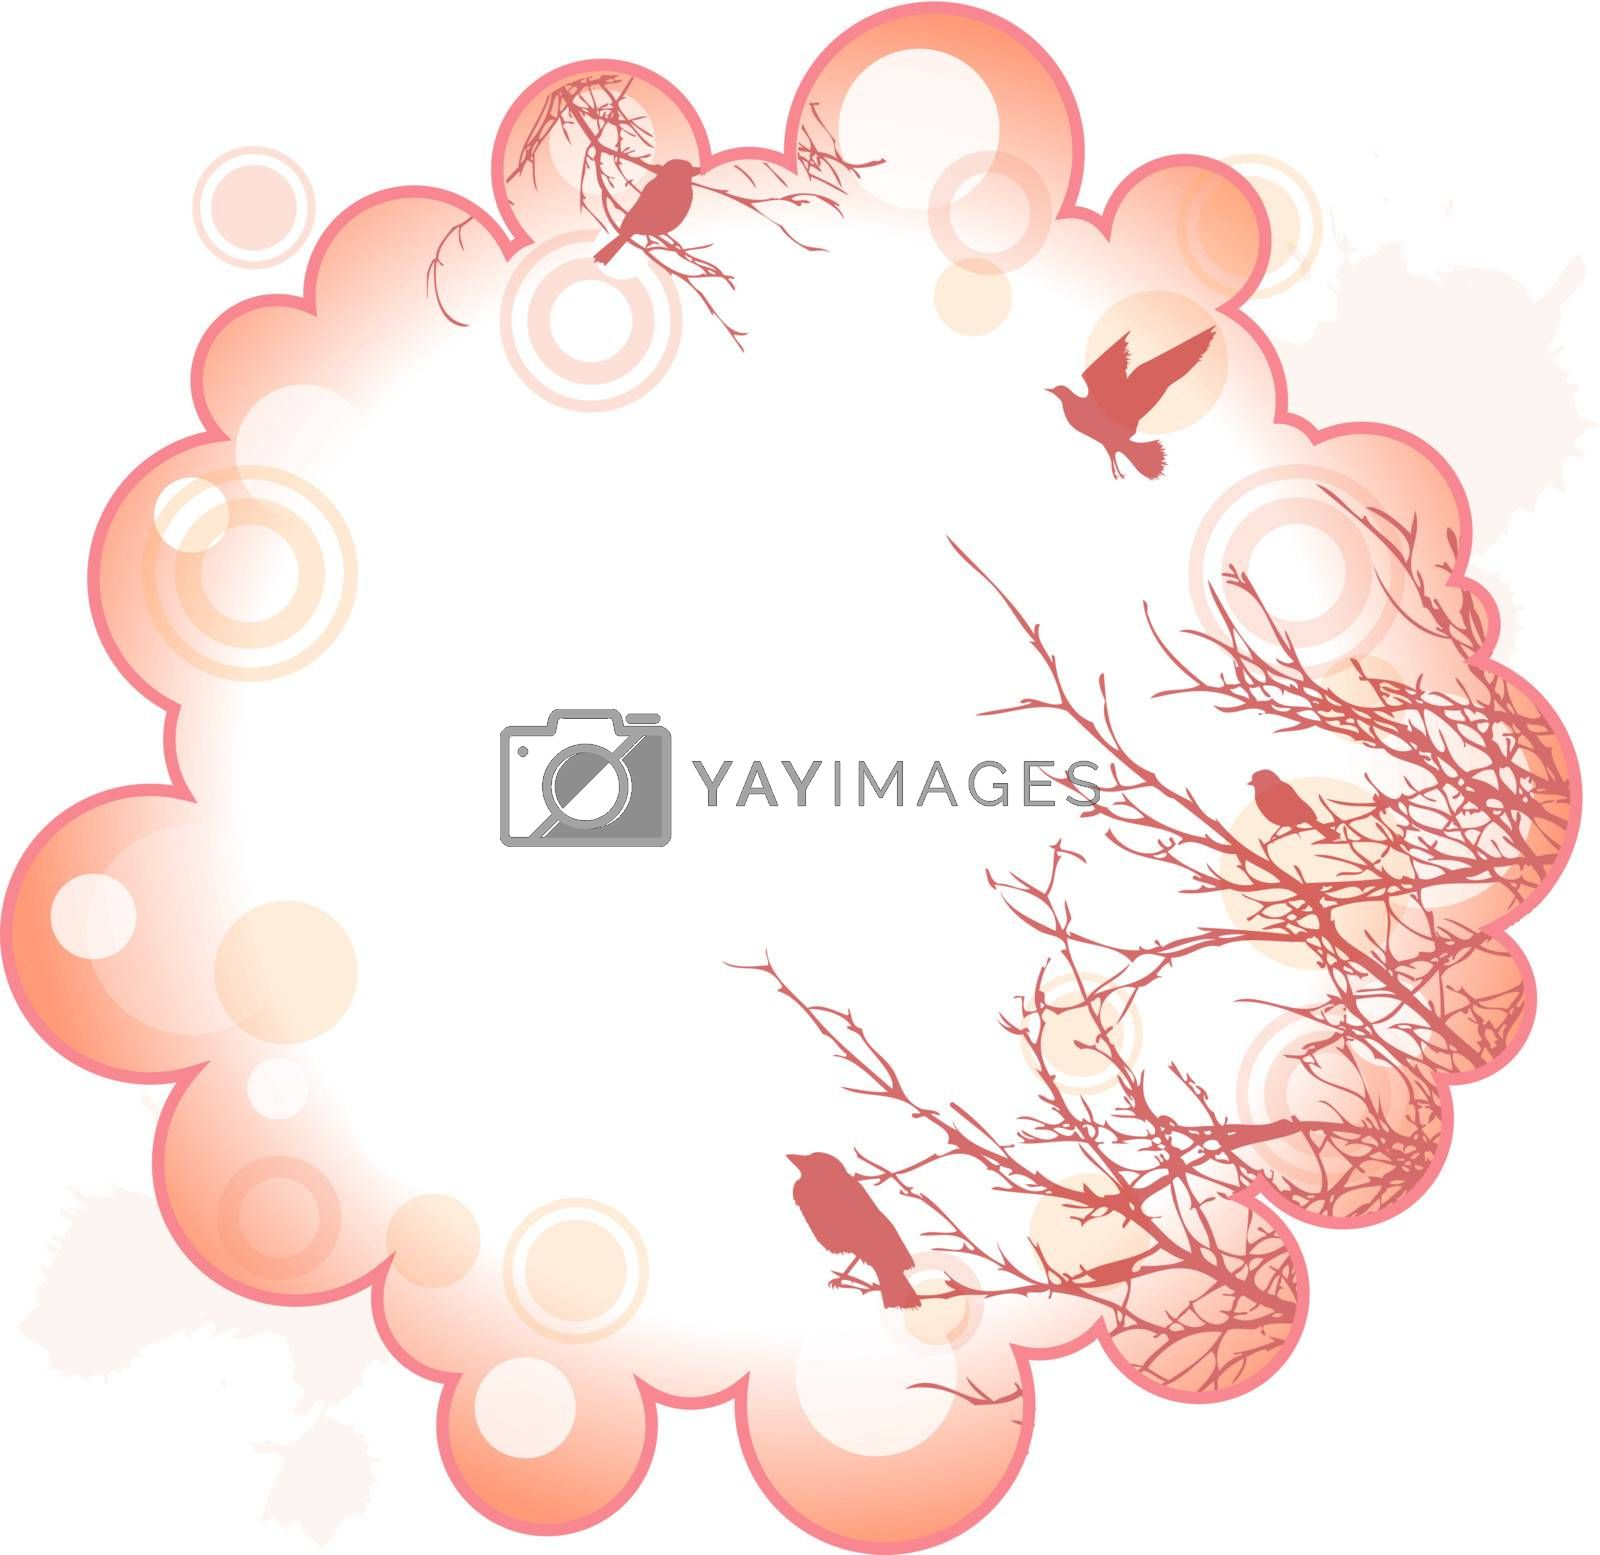 decorative abstract frame with silhouette of trees and birds, copyspace